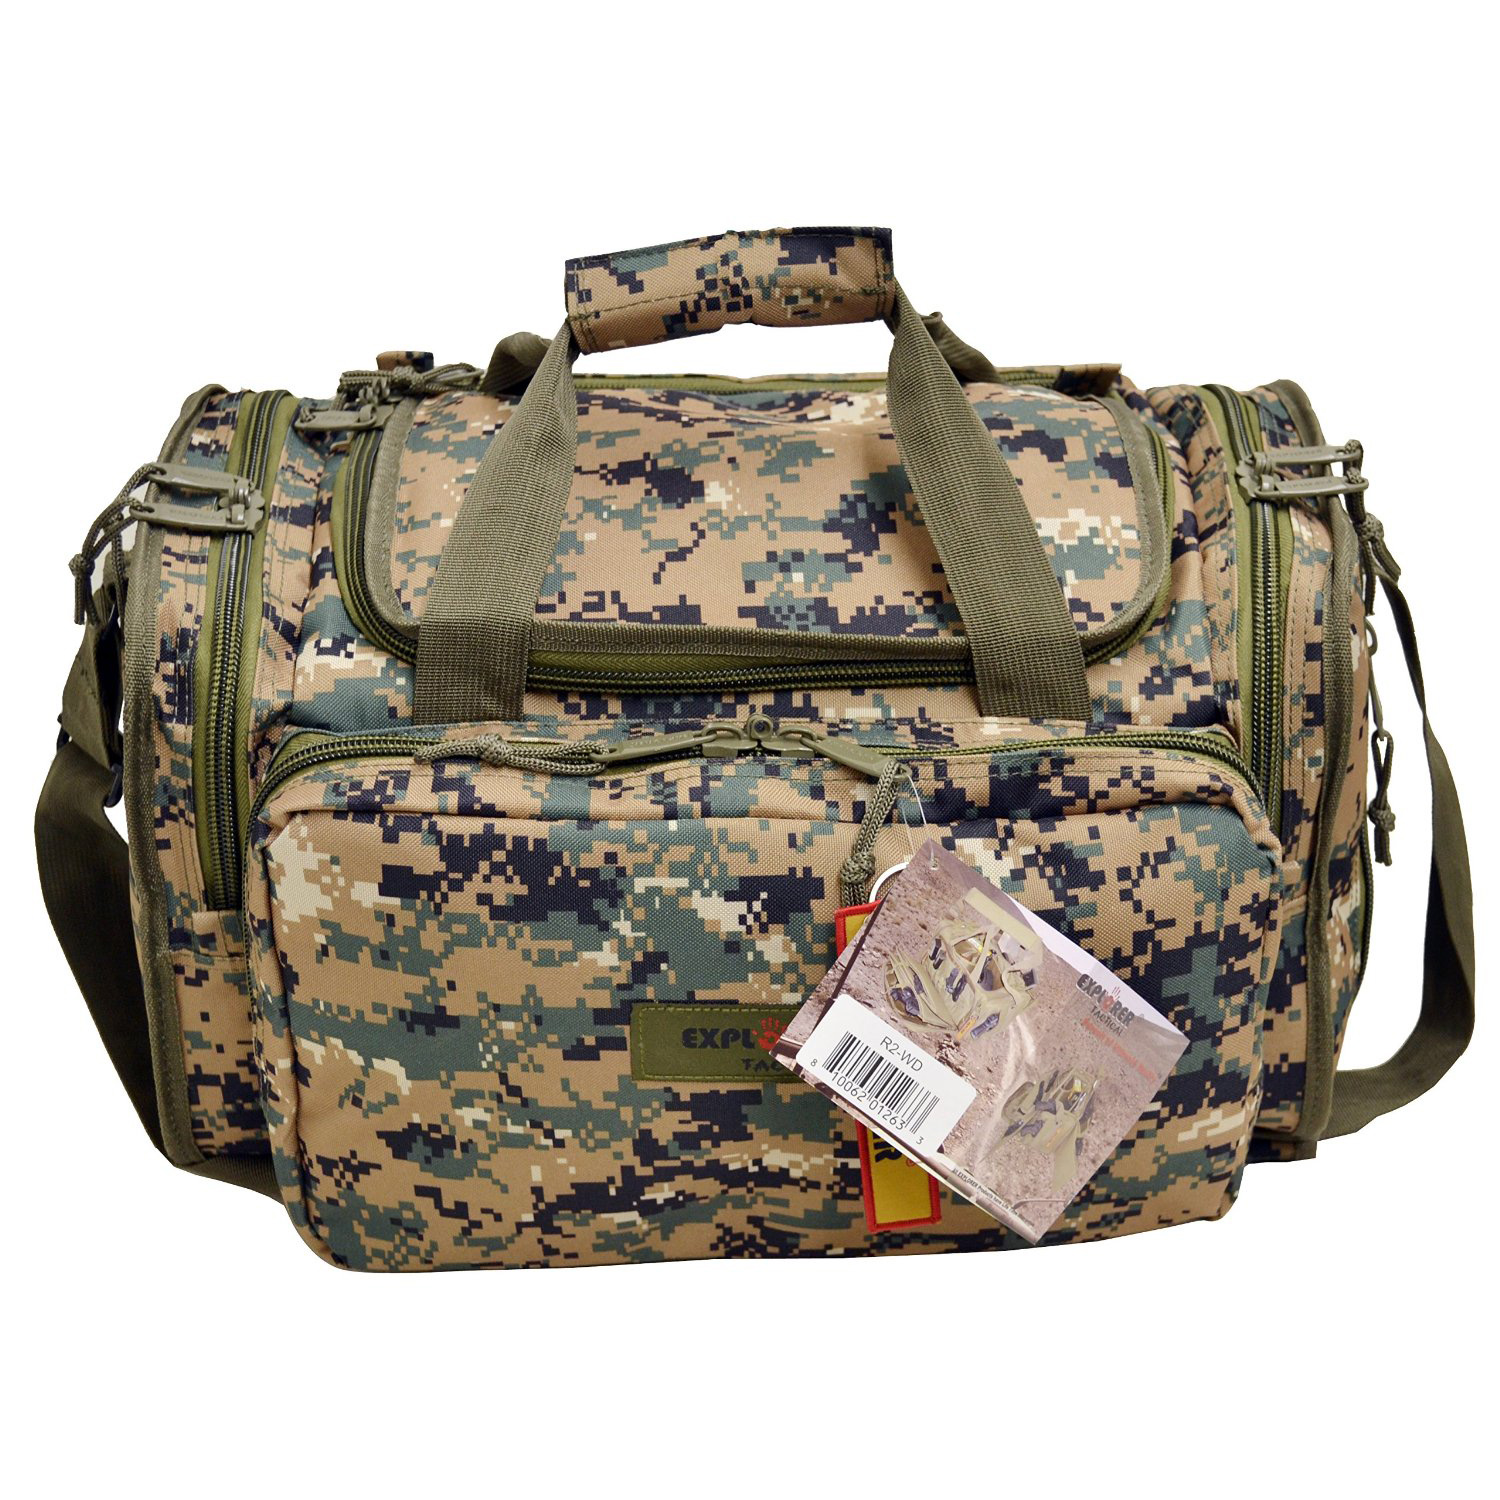 Every Day Carry Tactical Military Range Bag w/ Padded Compartments